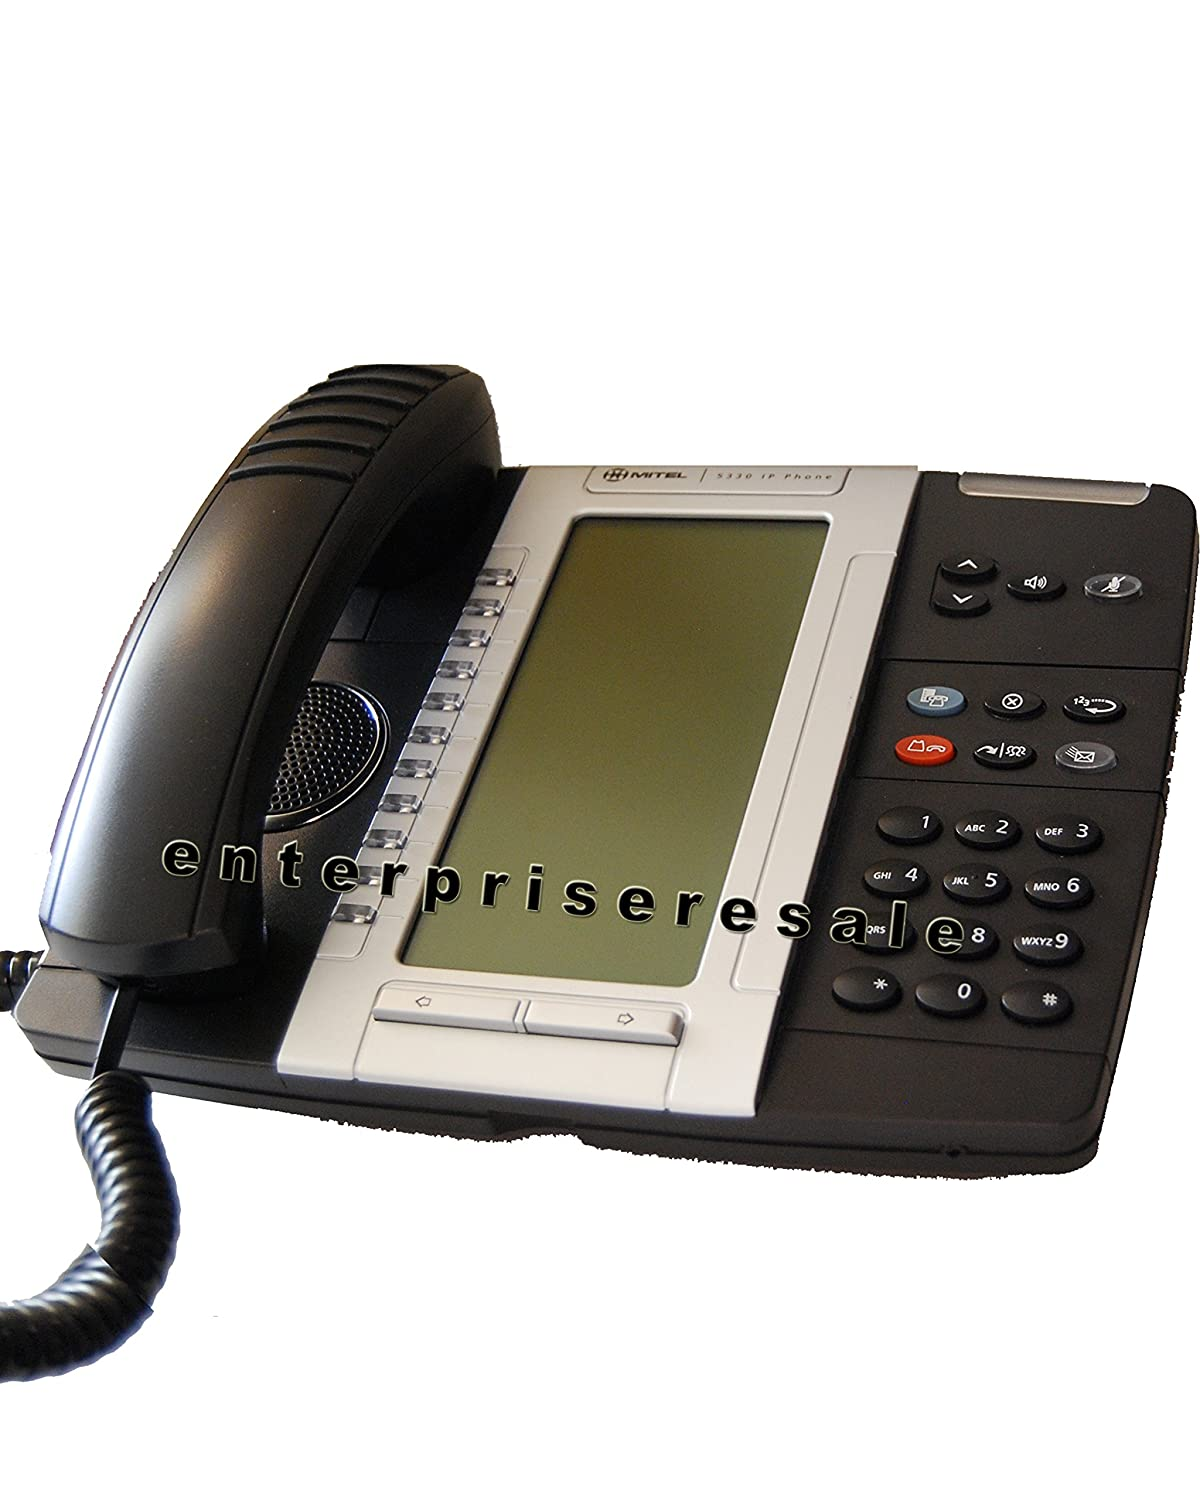 MITEL 5330 DUAL MODE VoIP BUSINESS PHONE WITH BACK LIT DISPLAY 50005804 1 YEAR WARRANTY (Certified Refurbished)